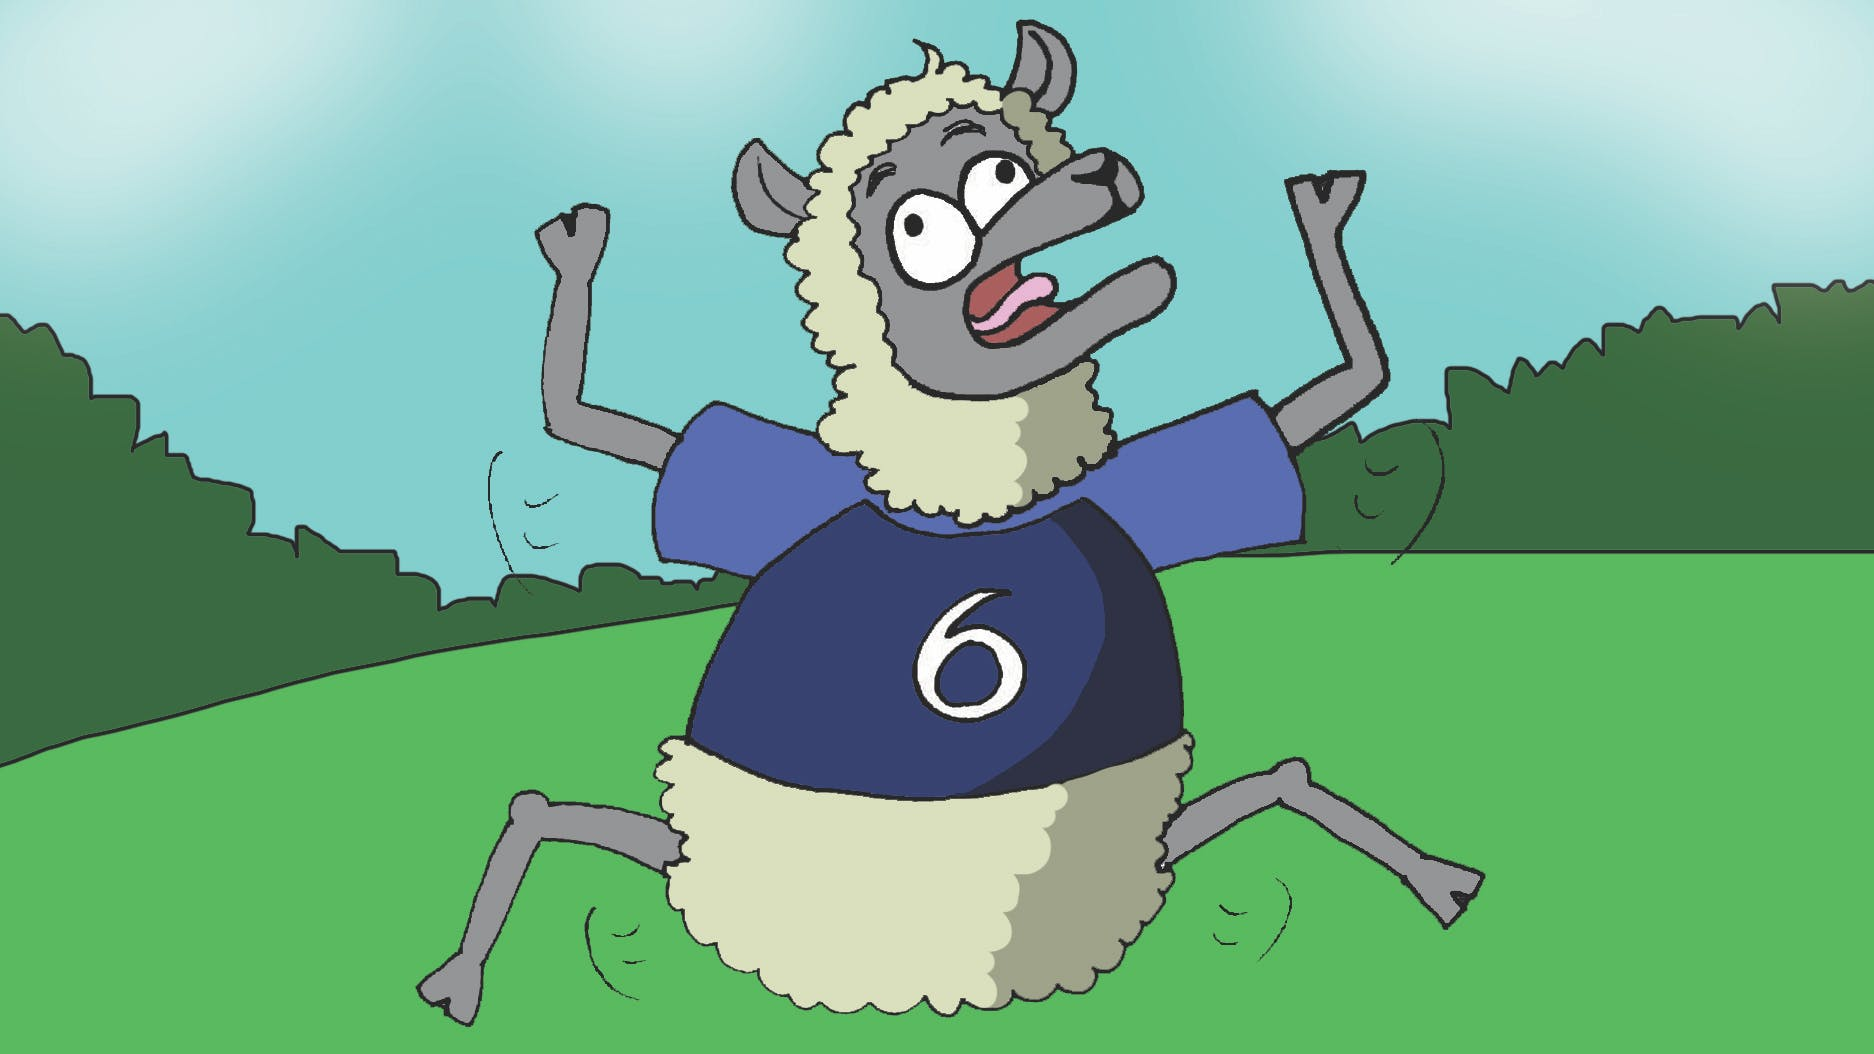 Who was the sheep's favourite footballer? - Paul PogBAAA!